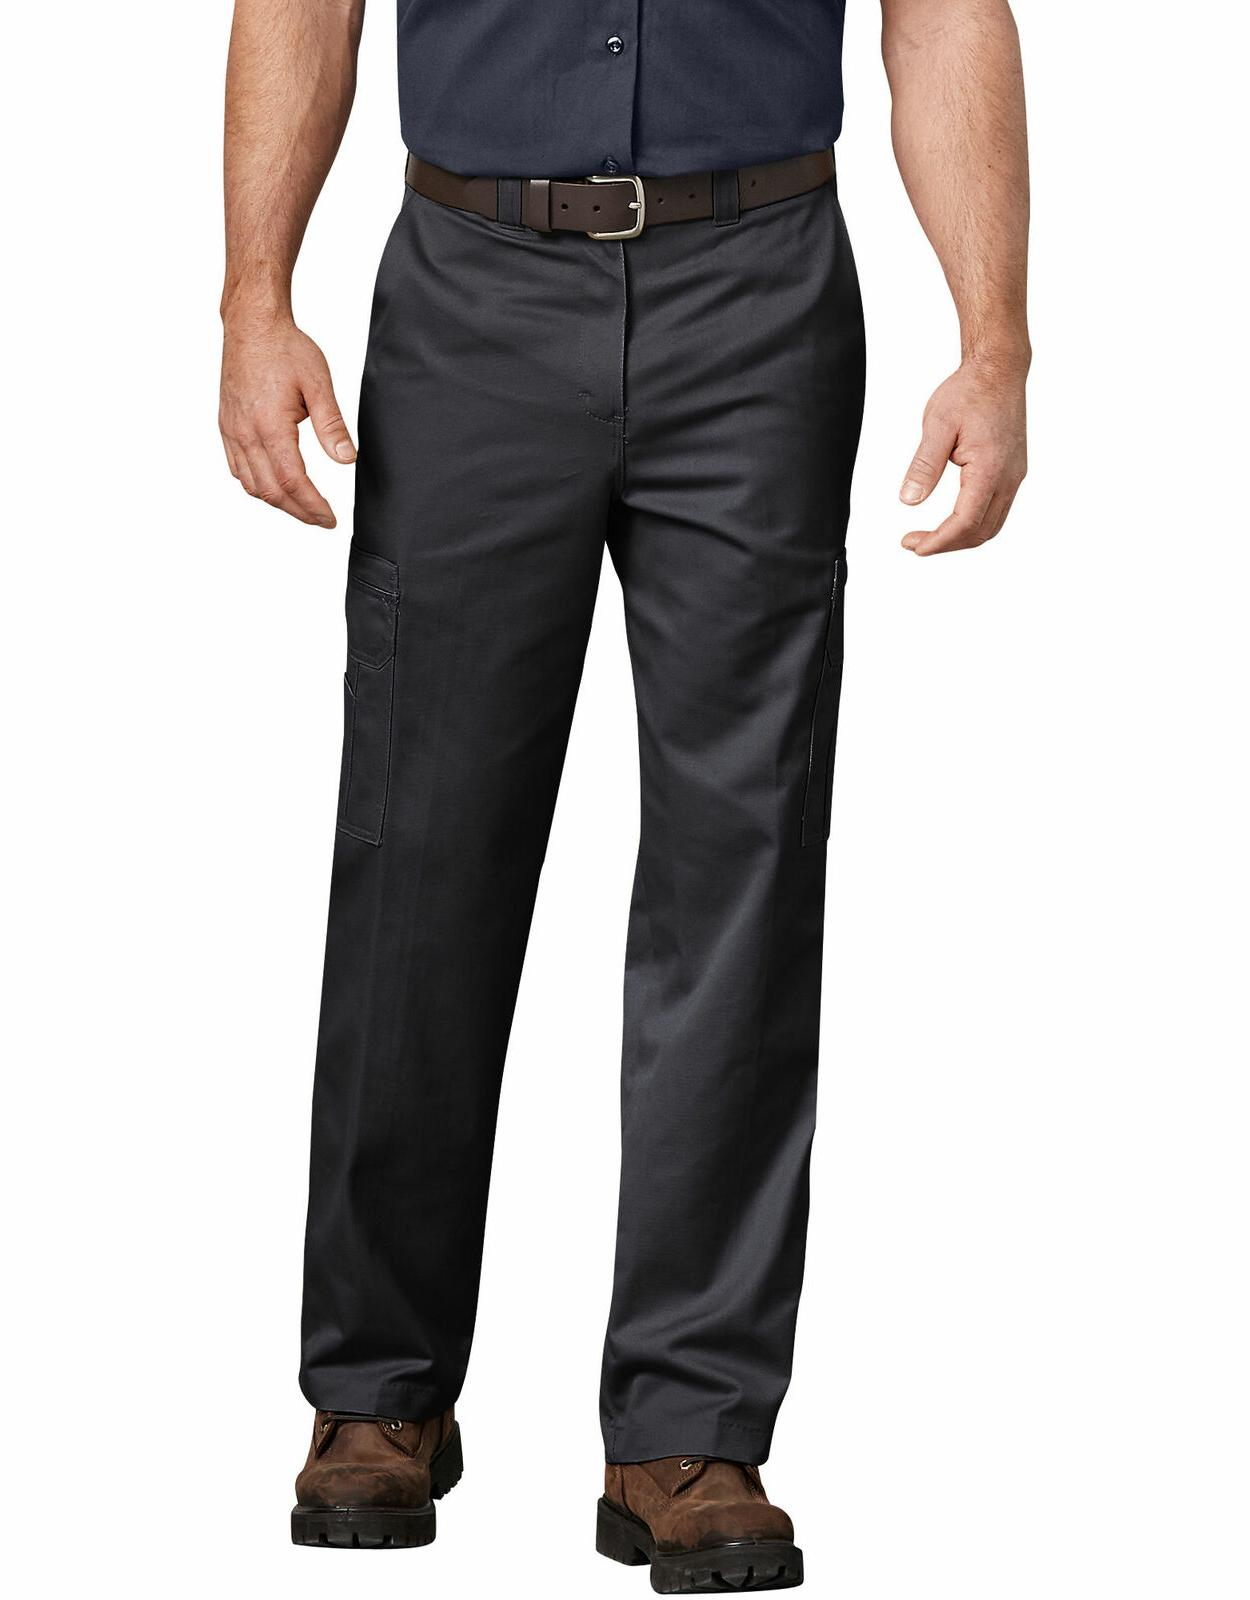 industrial work uniform relaxed fit cotton cargo